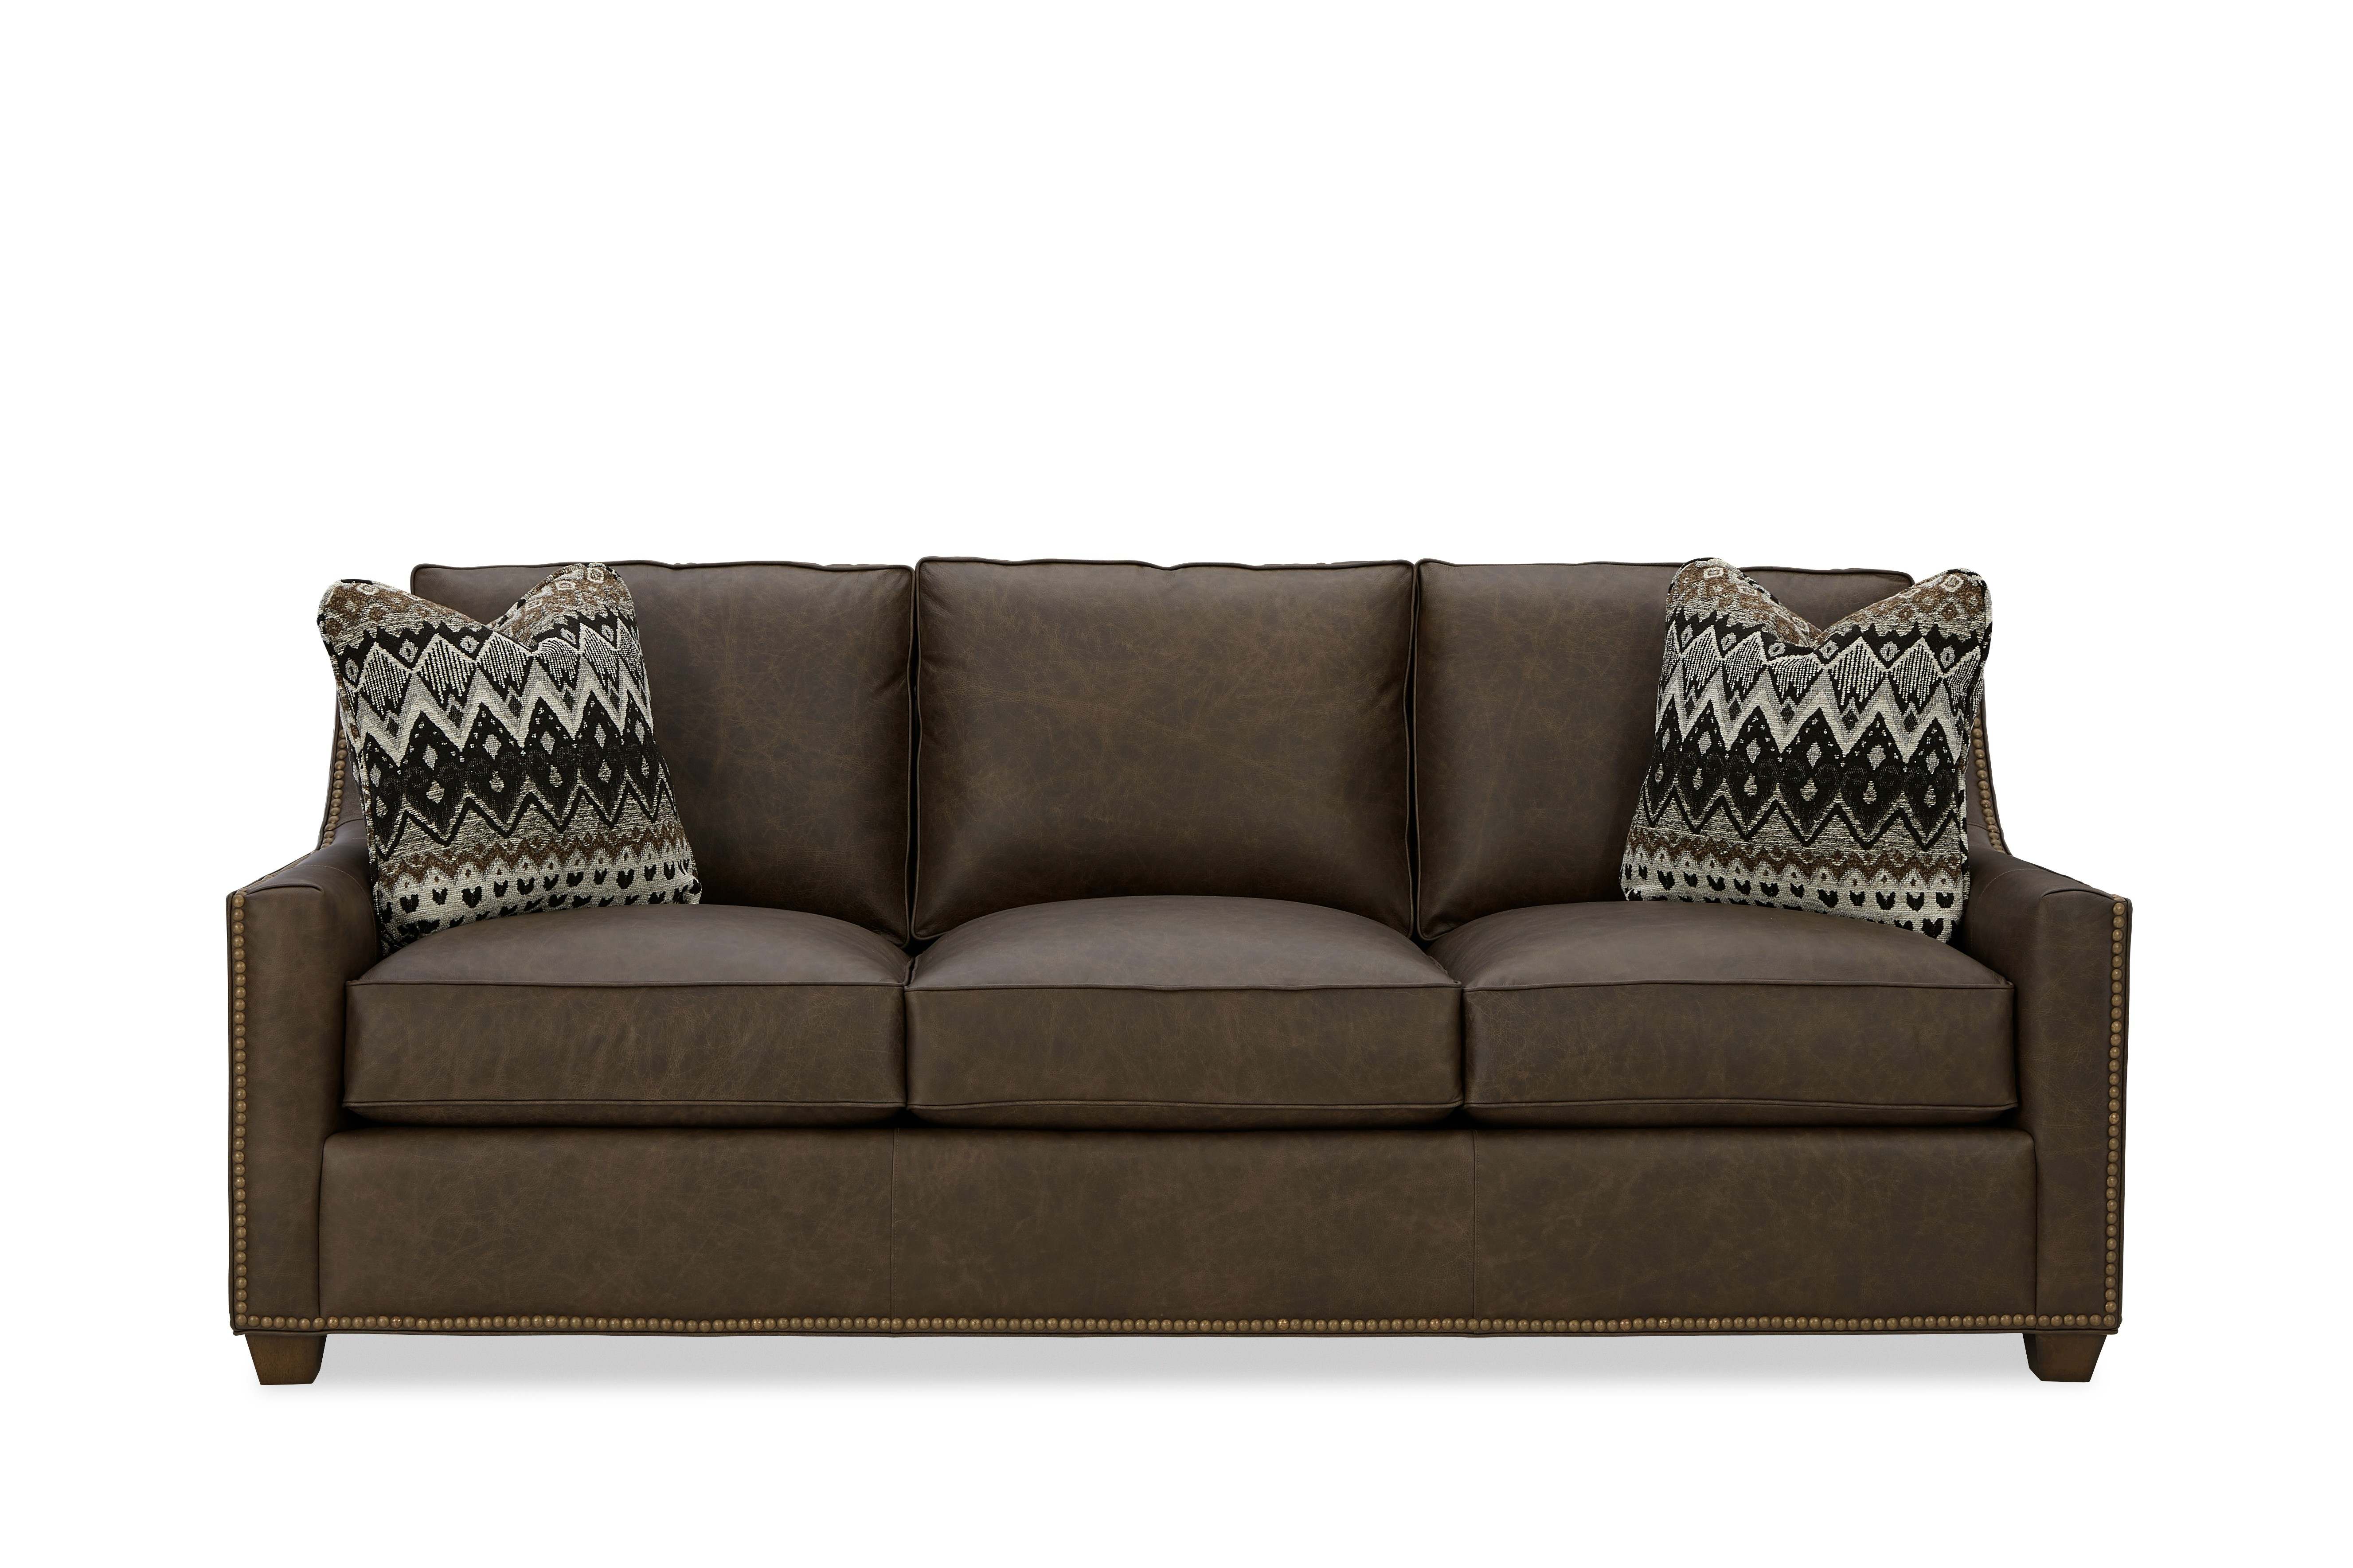 L702950BD Sofa w/ Pillows by Hickory Craft at Godby Home Furnishings